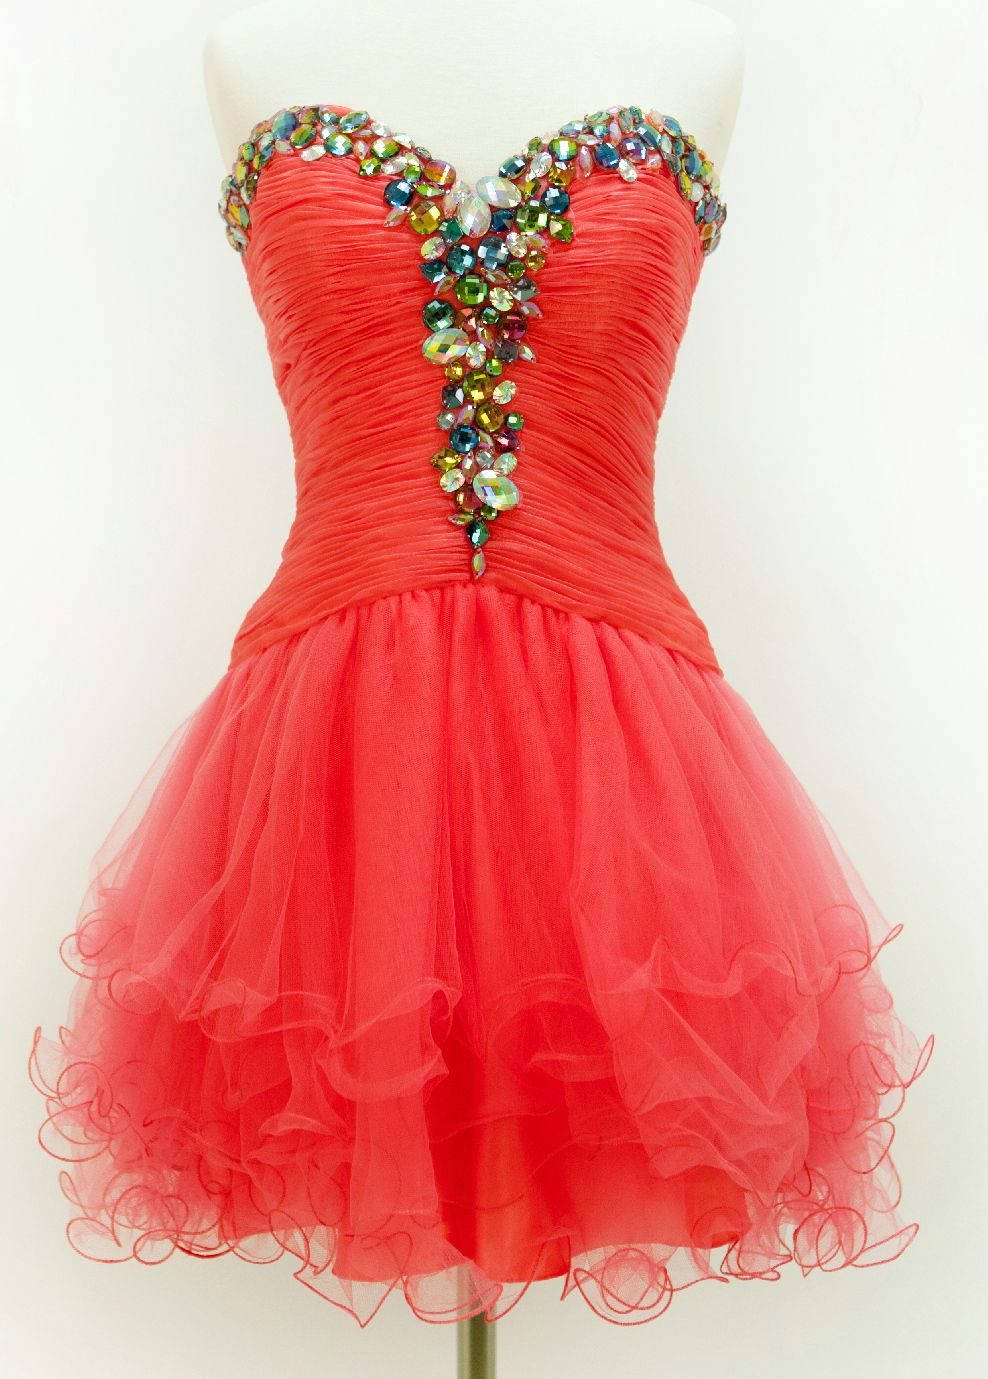 7319881d7a0 Bling with Glamor describes perfectly this short dress